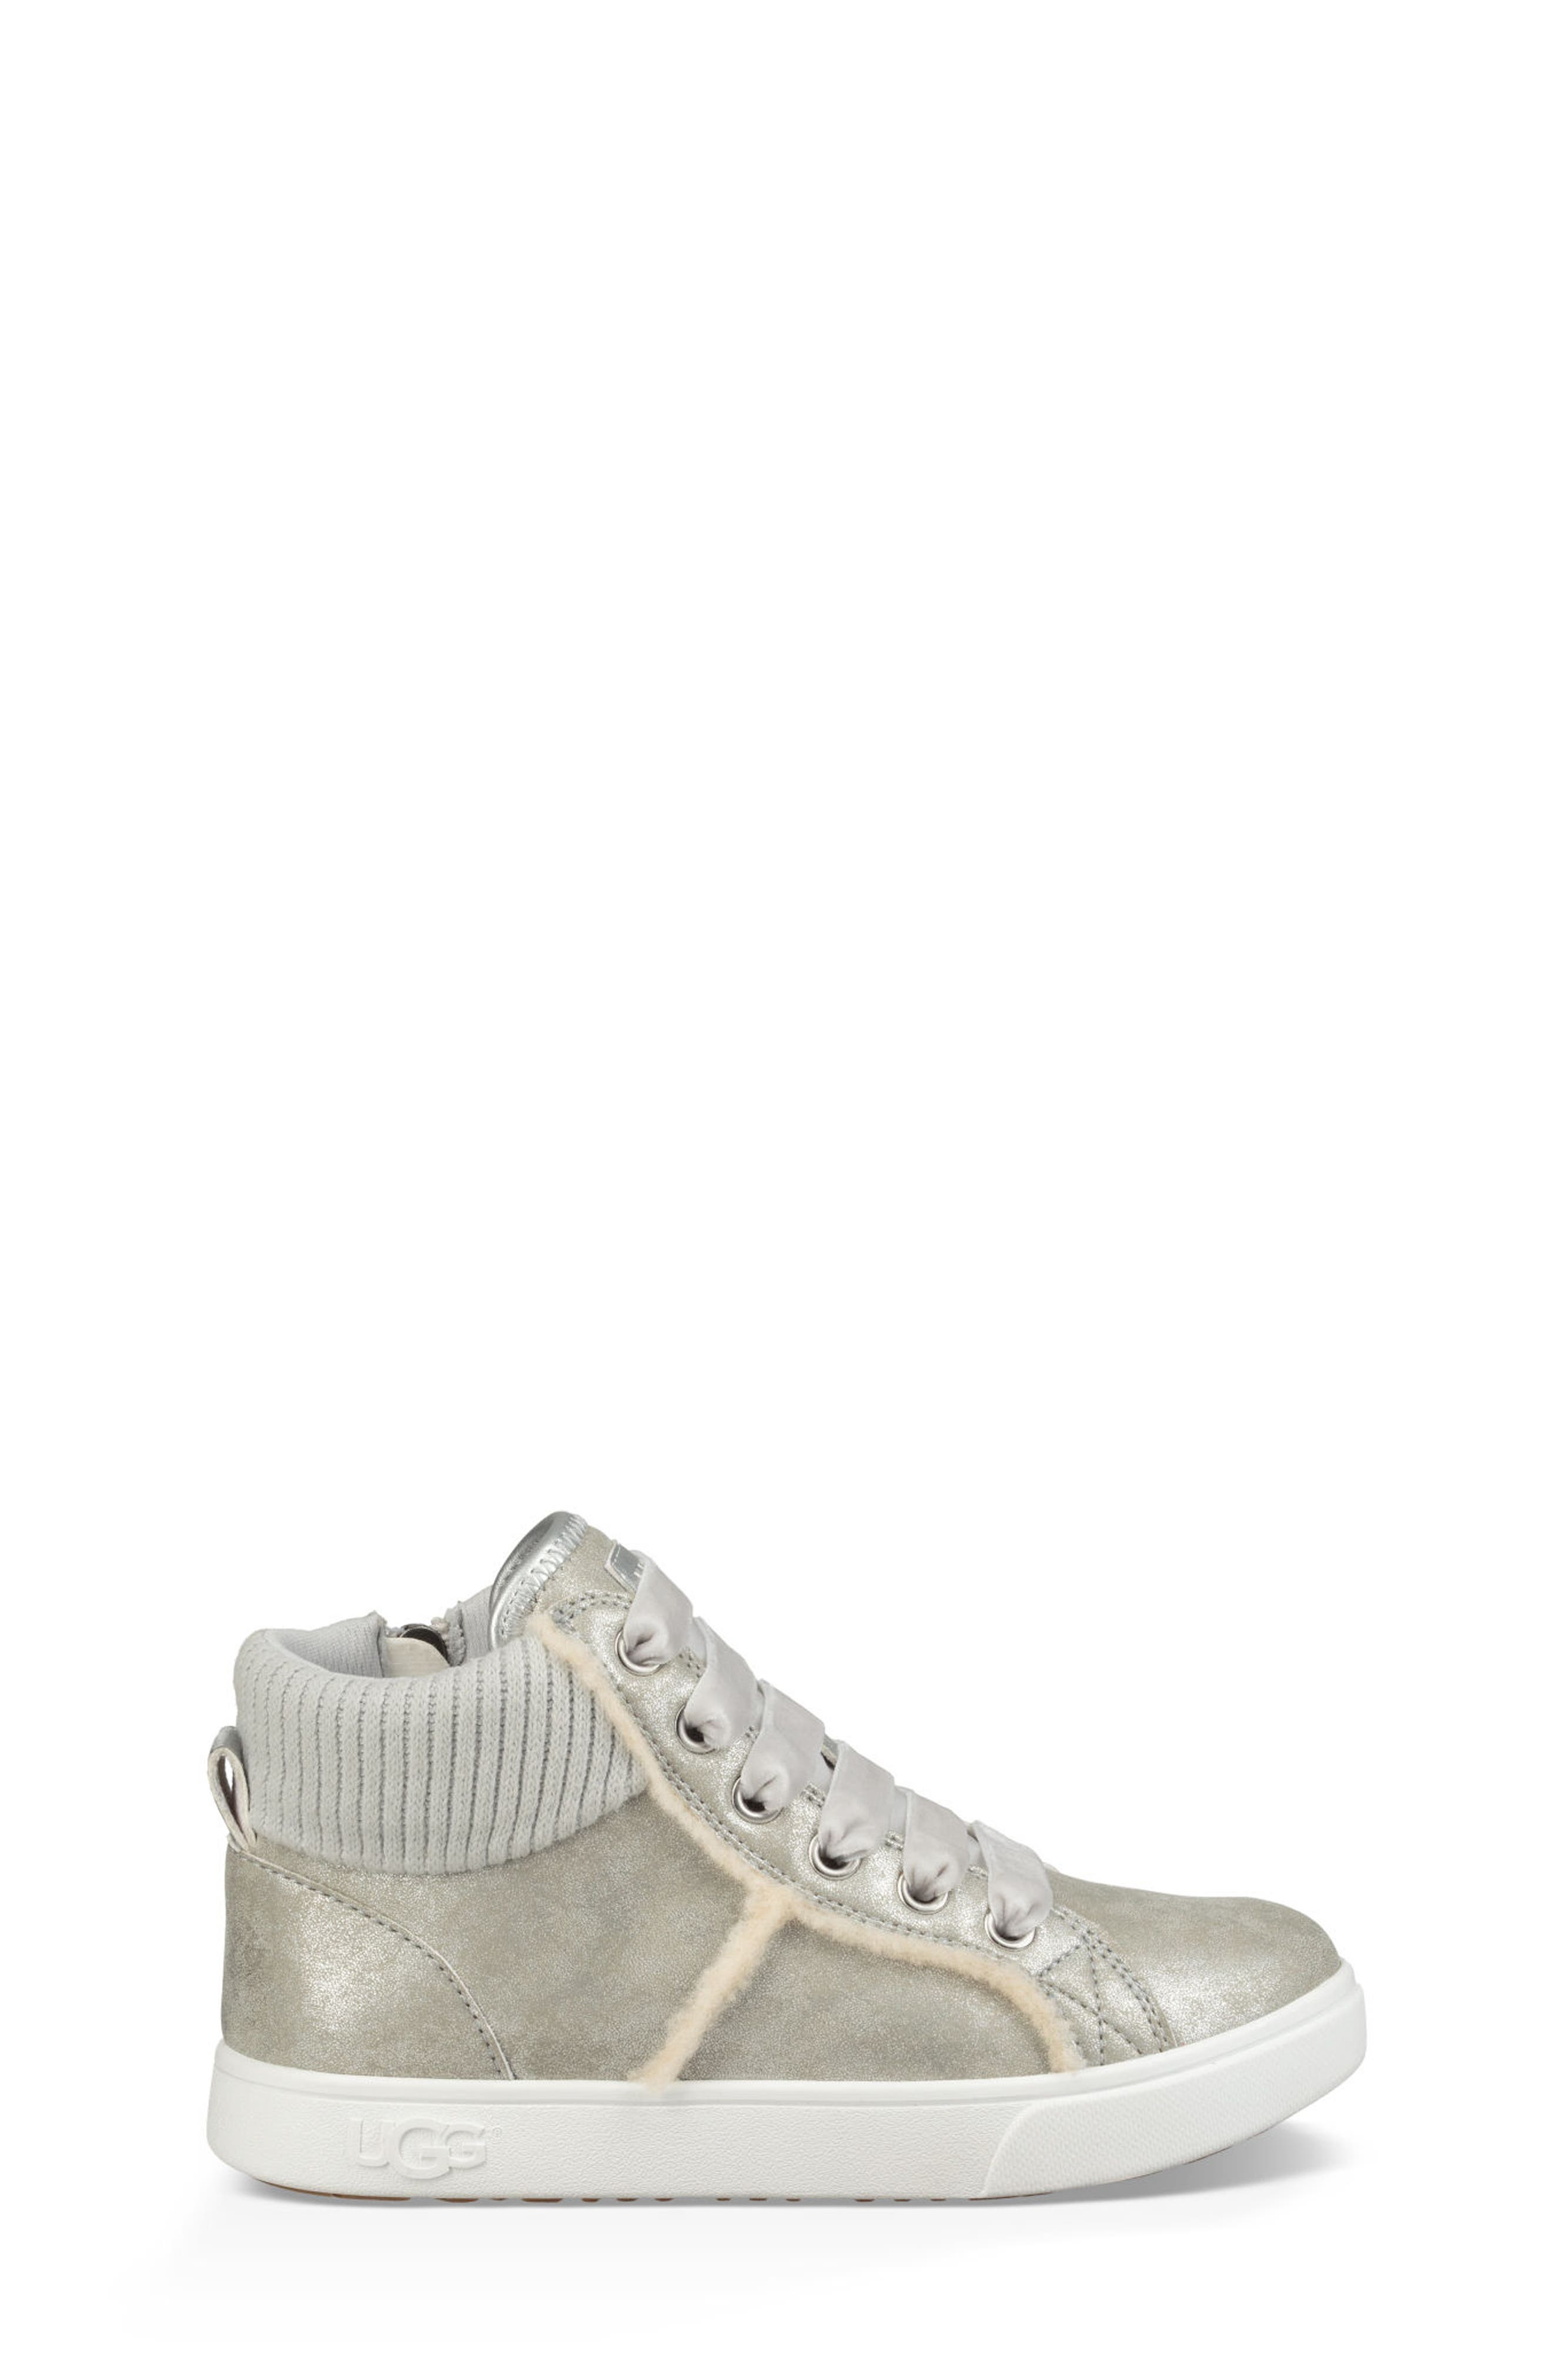 UGG<SUP>®</SUP>, Addie High Top Sneaker, Alternate thumbnail 2, color, SILVER